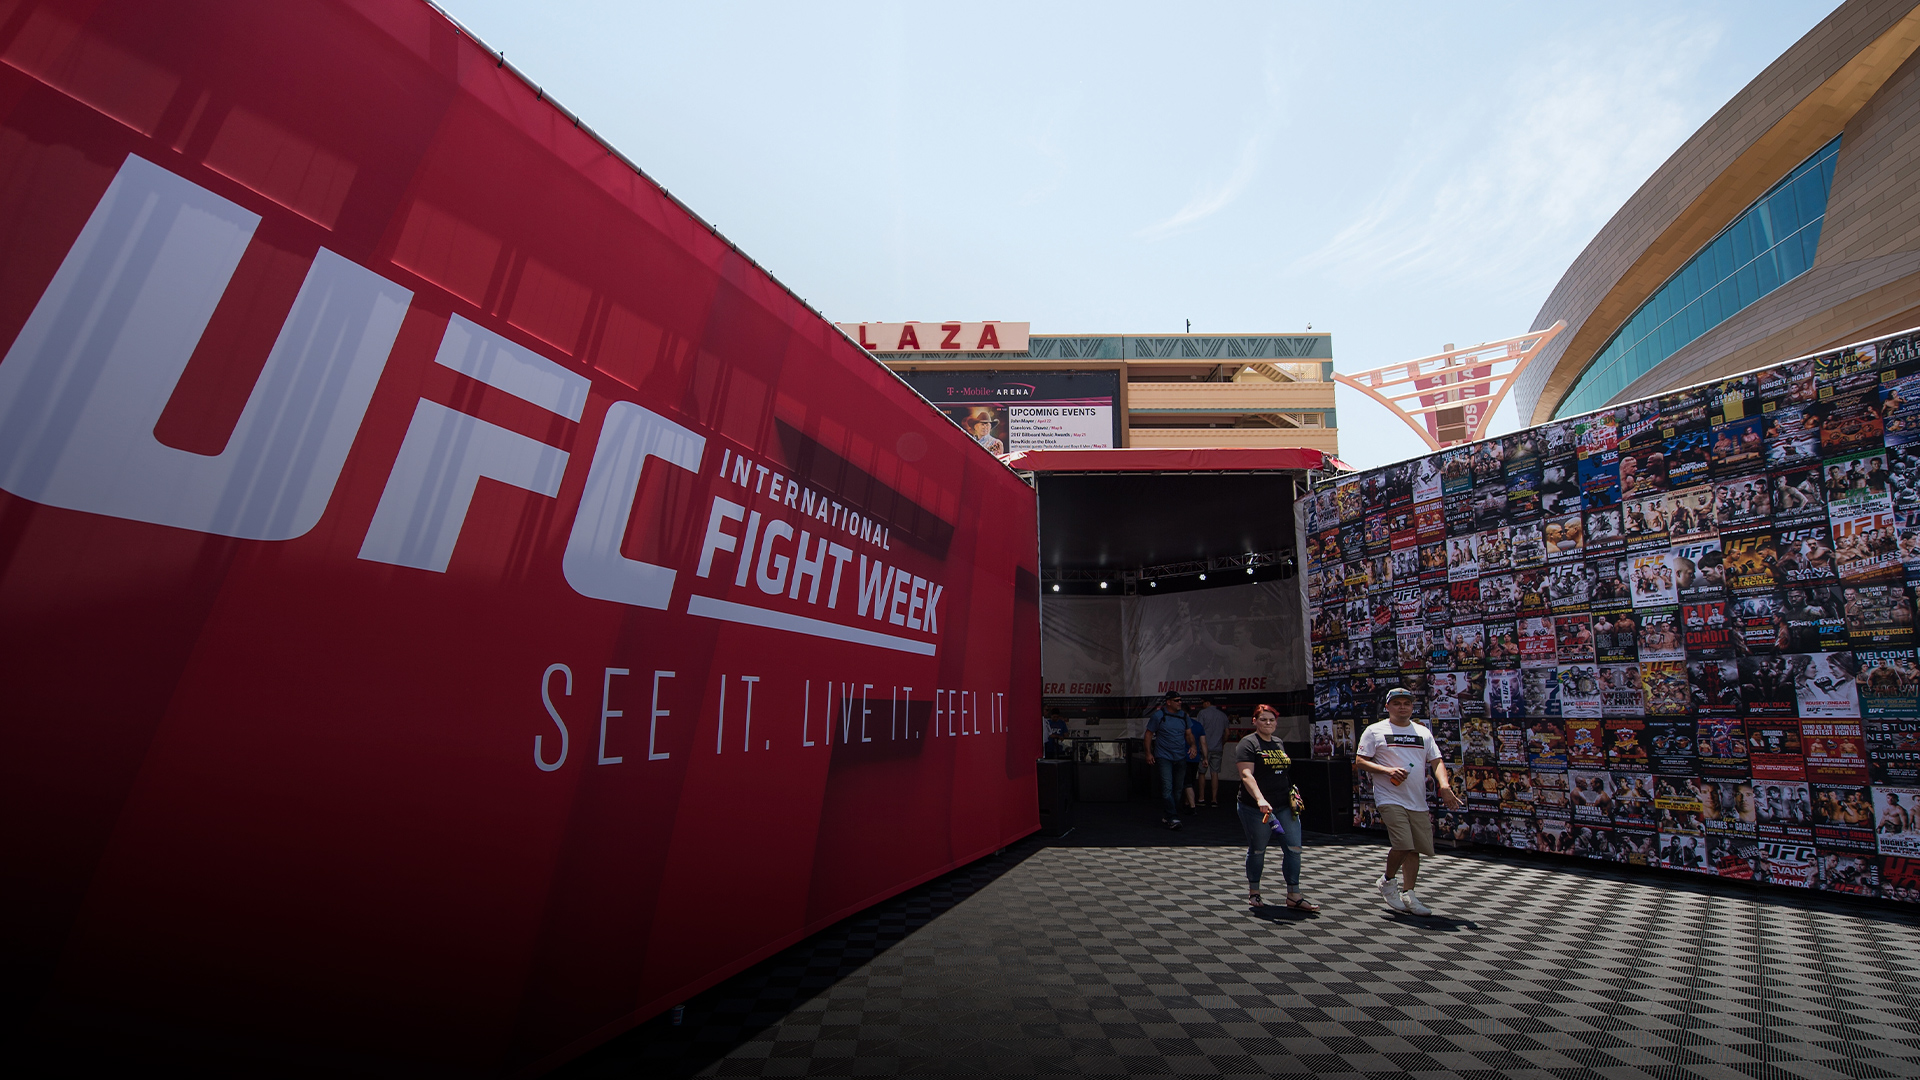 A general view of the UFC Fan Experience at T-Mobile Arena on July 7, 2017 in Las Vegas, Nevada. (Photo by Brandon Magnus/Zuffa LLC)